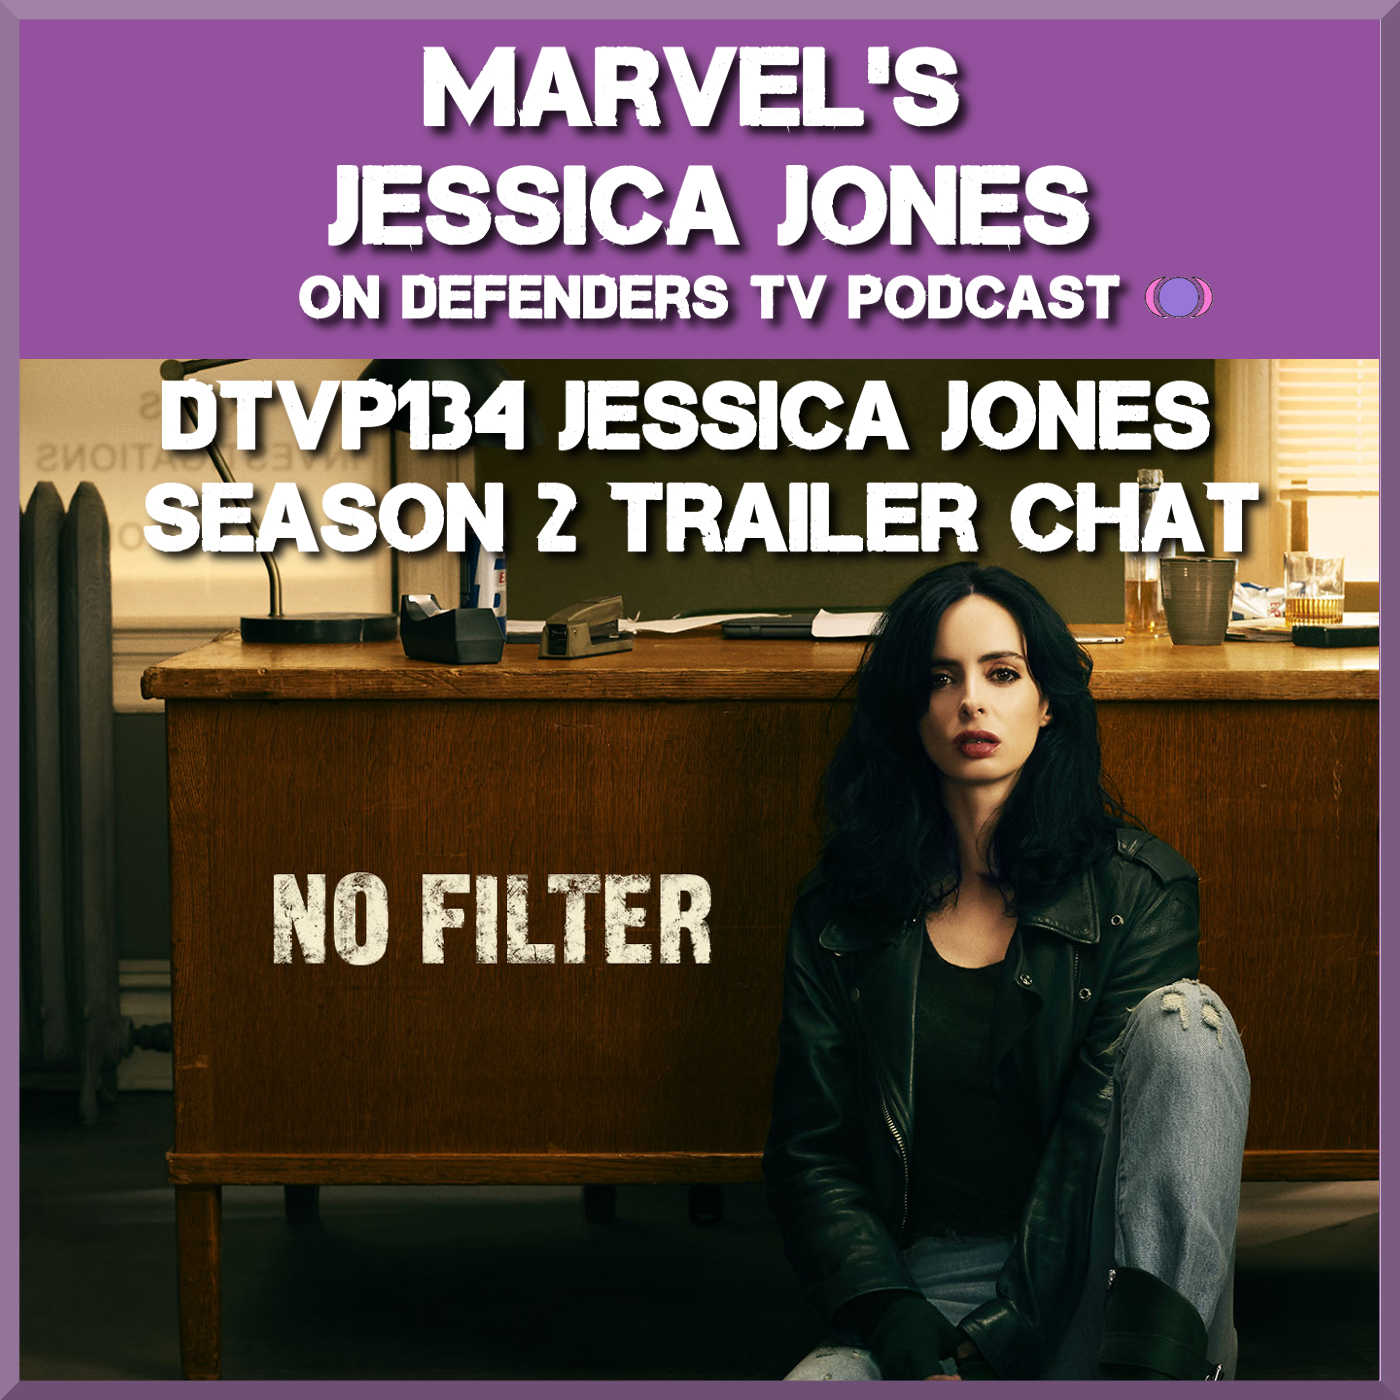 Jessica Jones Season 2 Trailer Reaction - Defenders TV